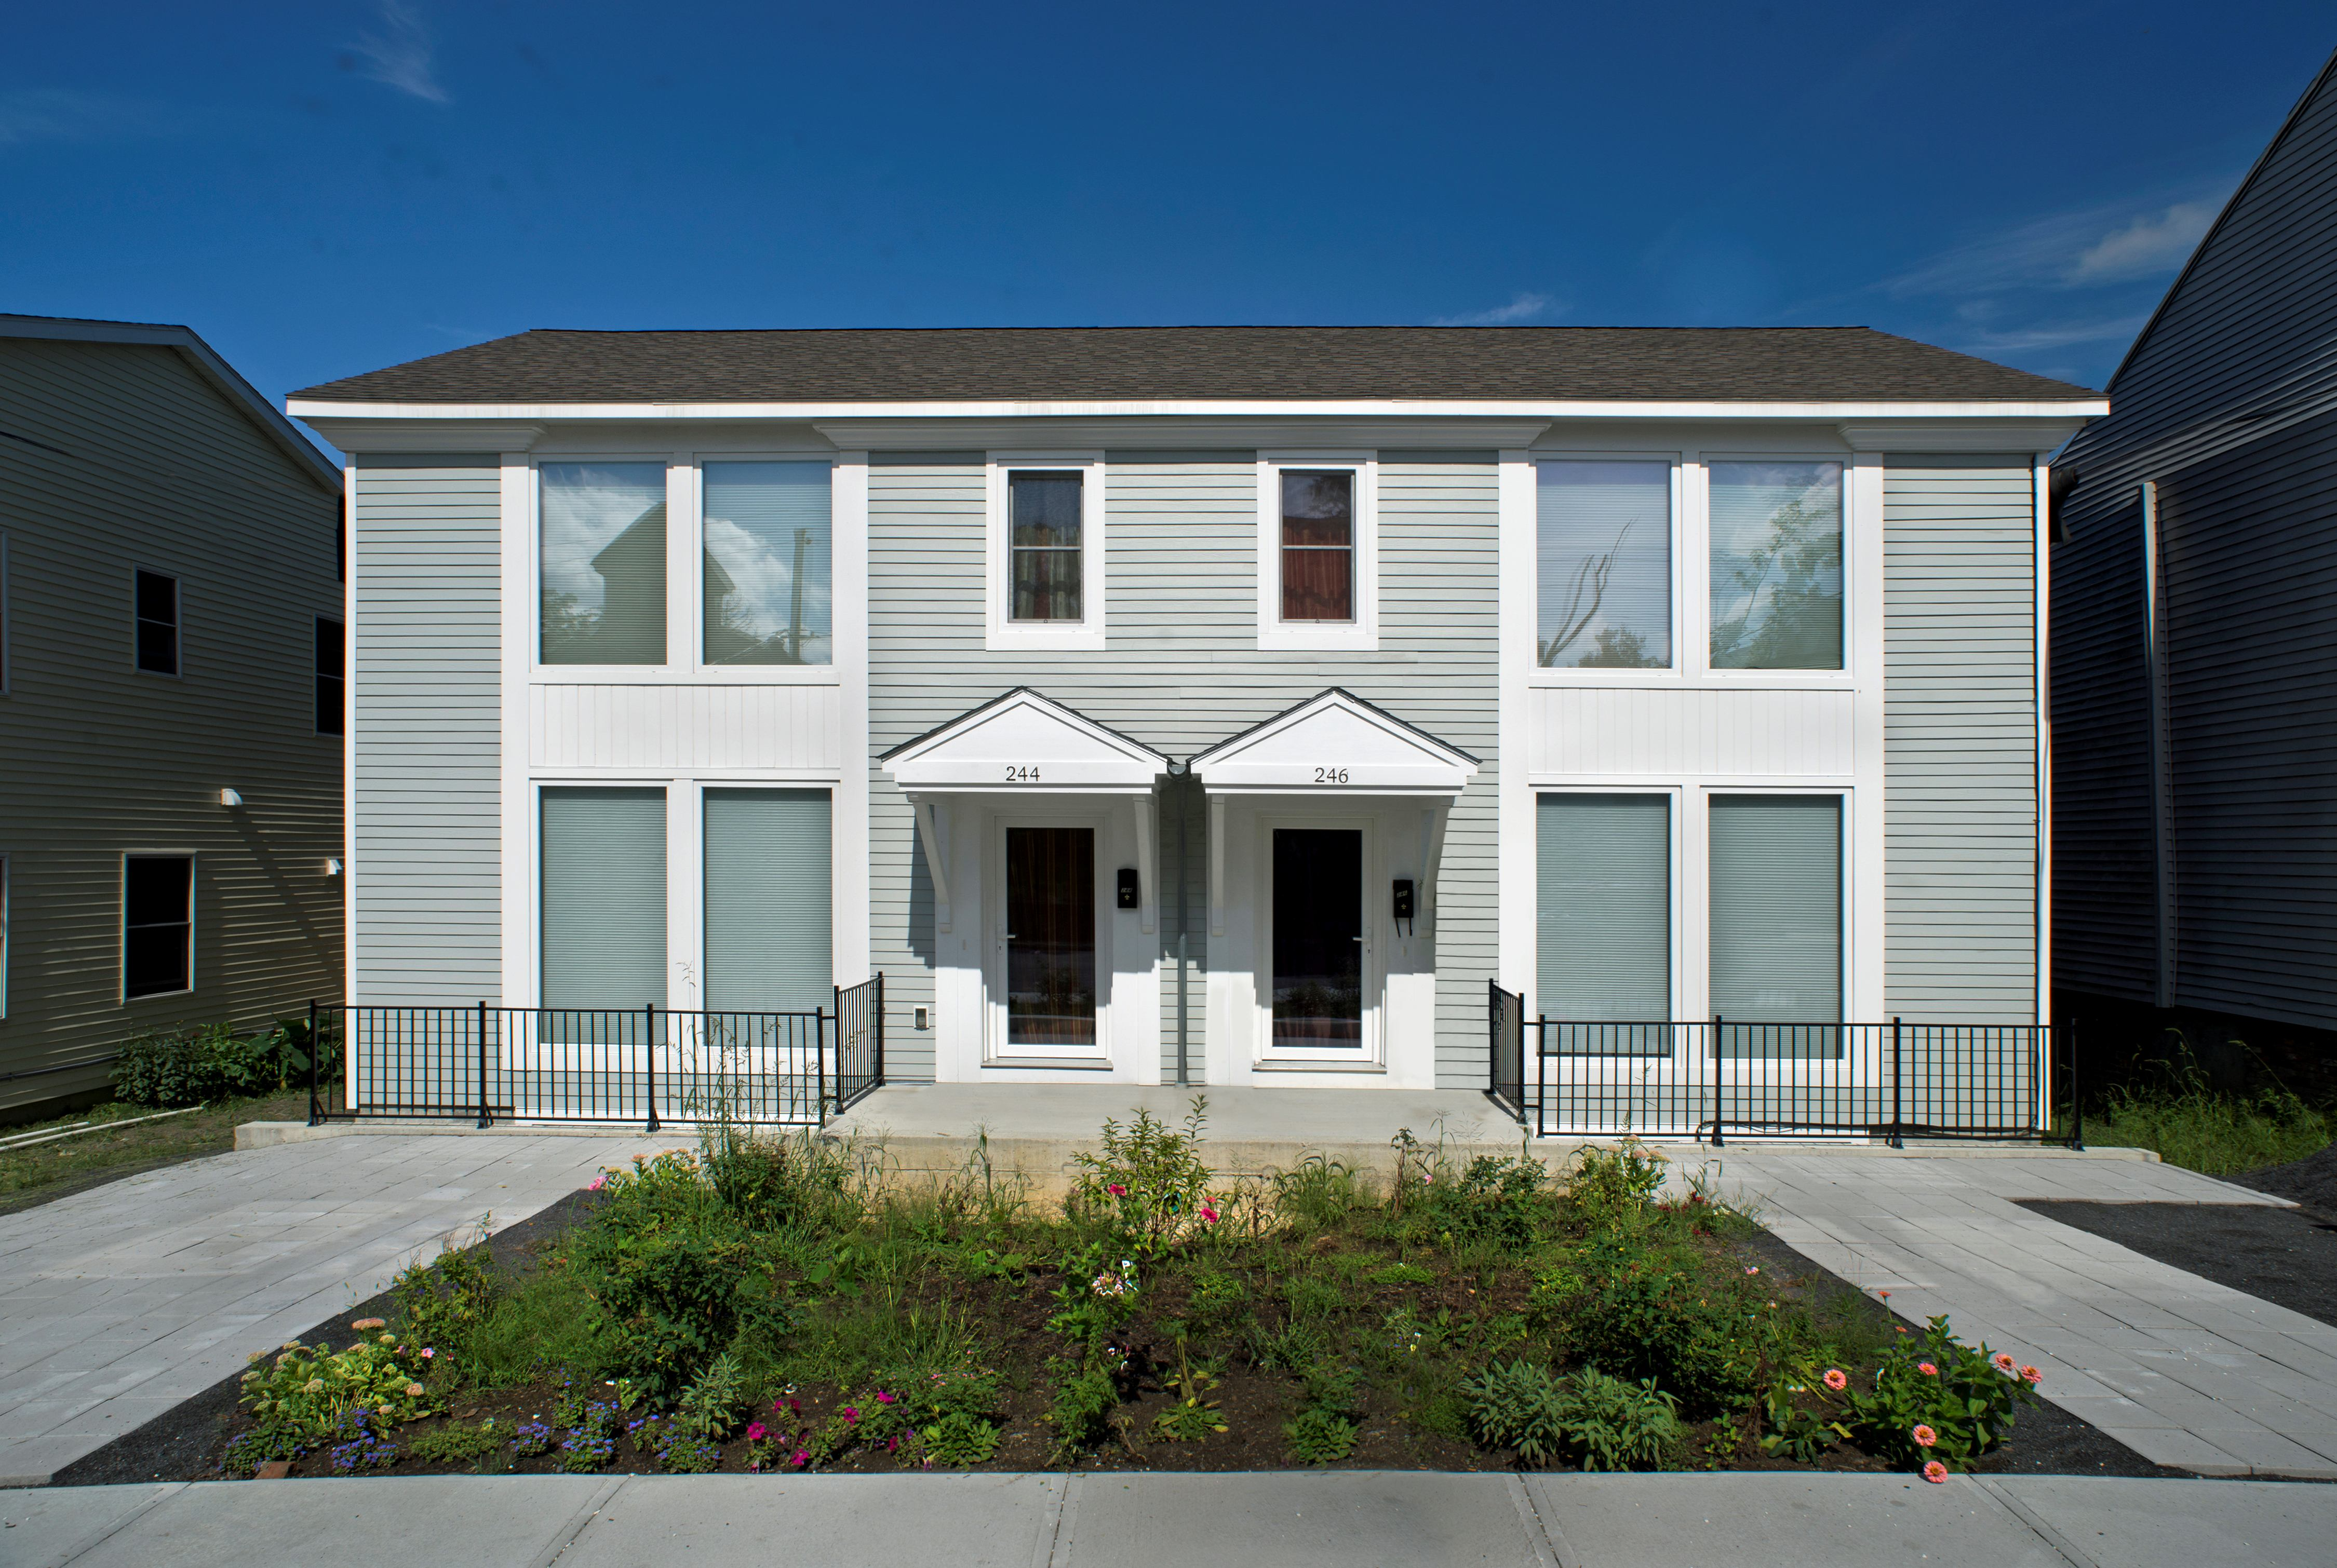 Habitat Townhomes Take a Passive Approach to Affordable Housing ...